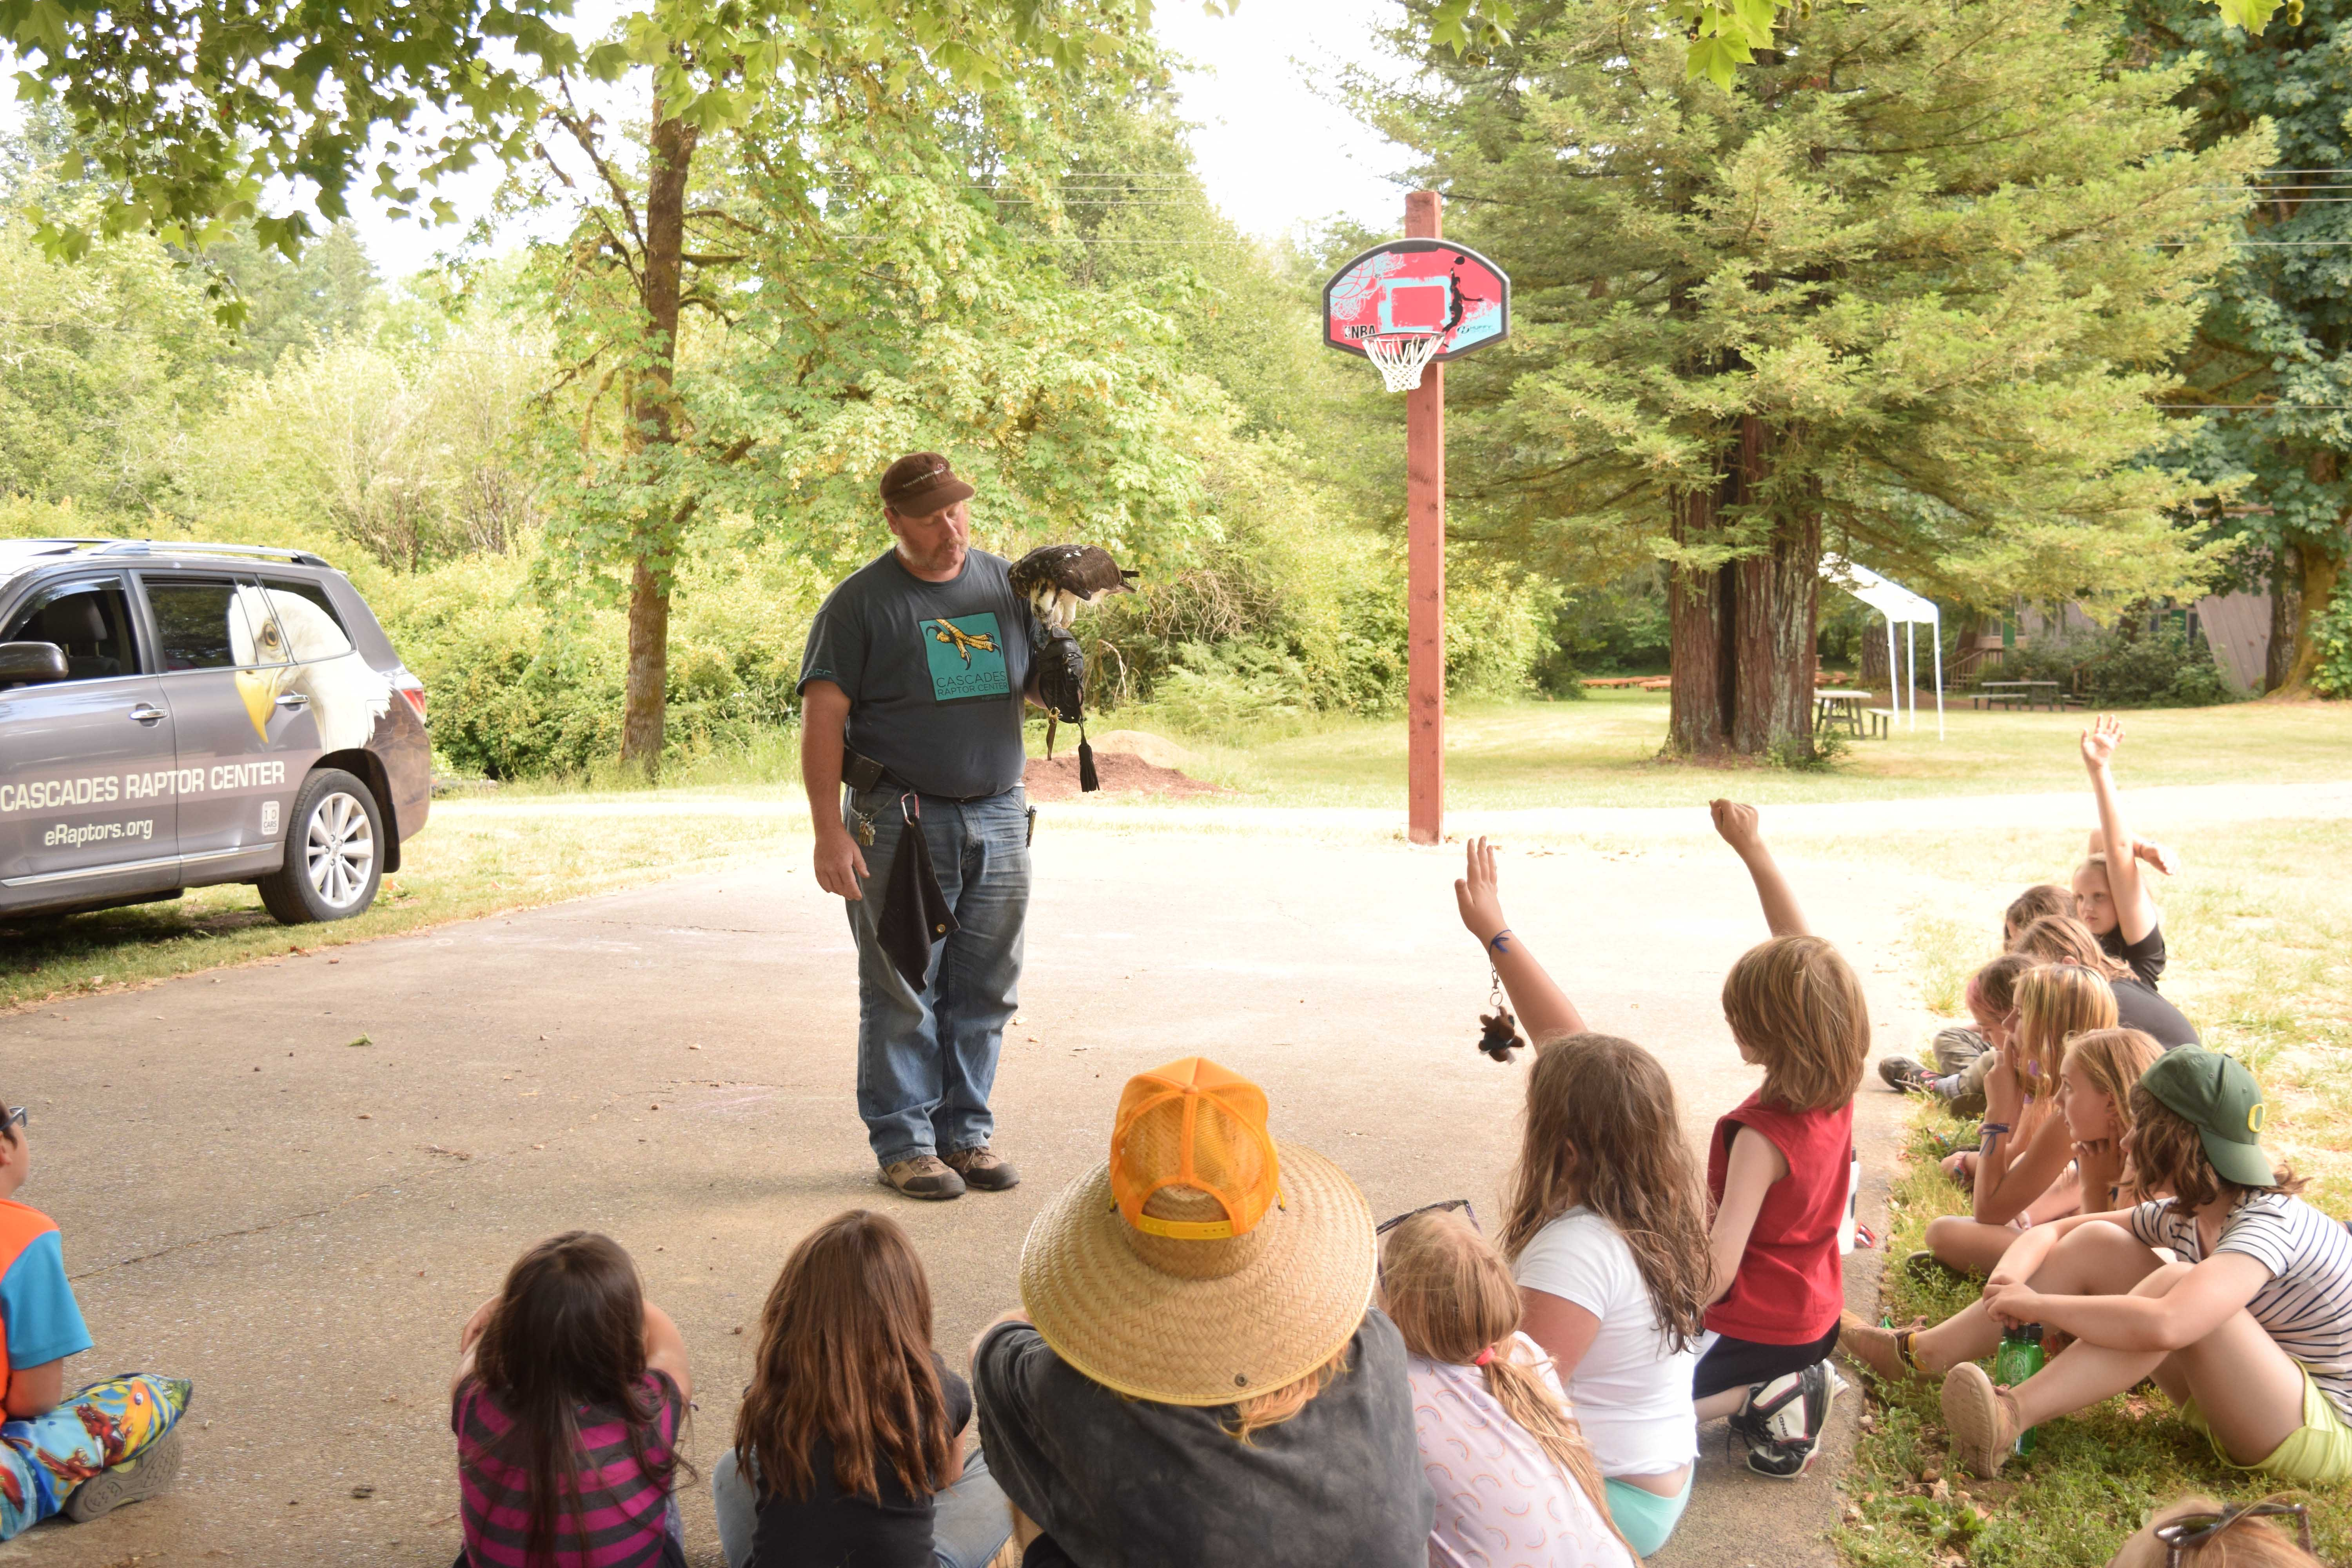 Campers ask questions about the raptor.